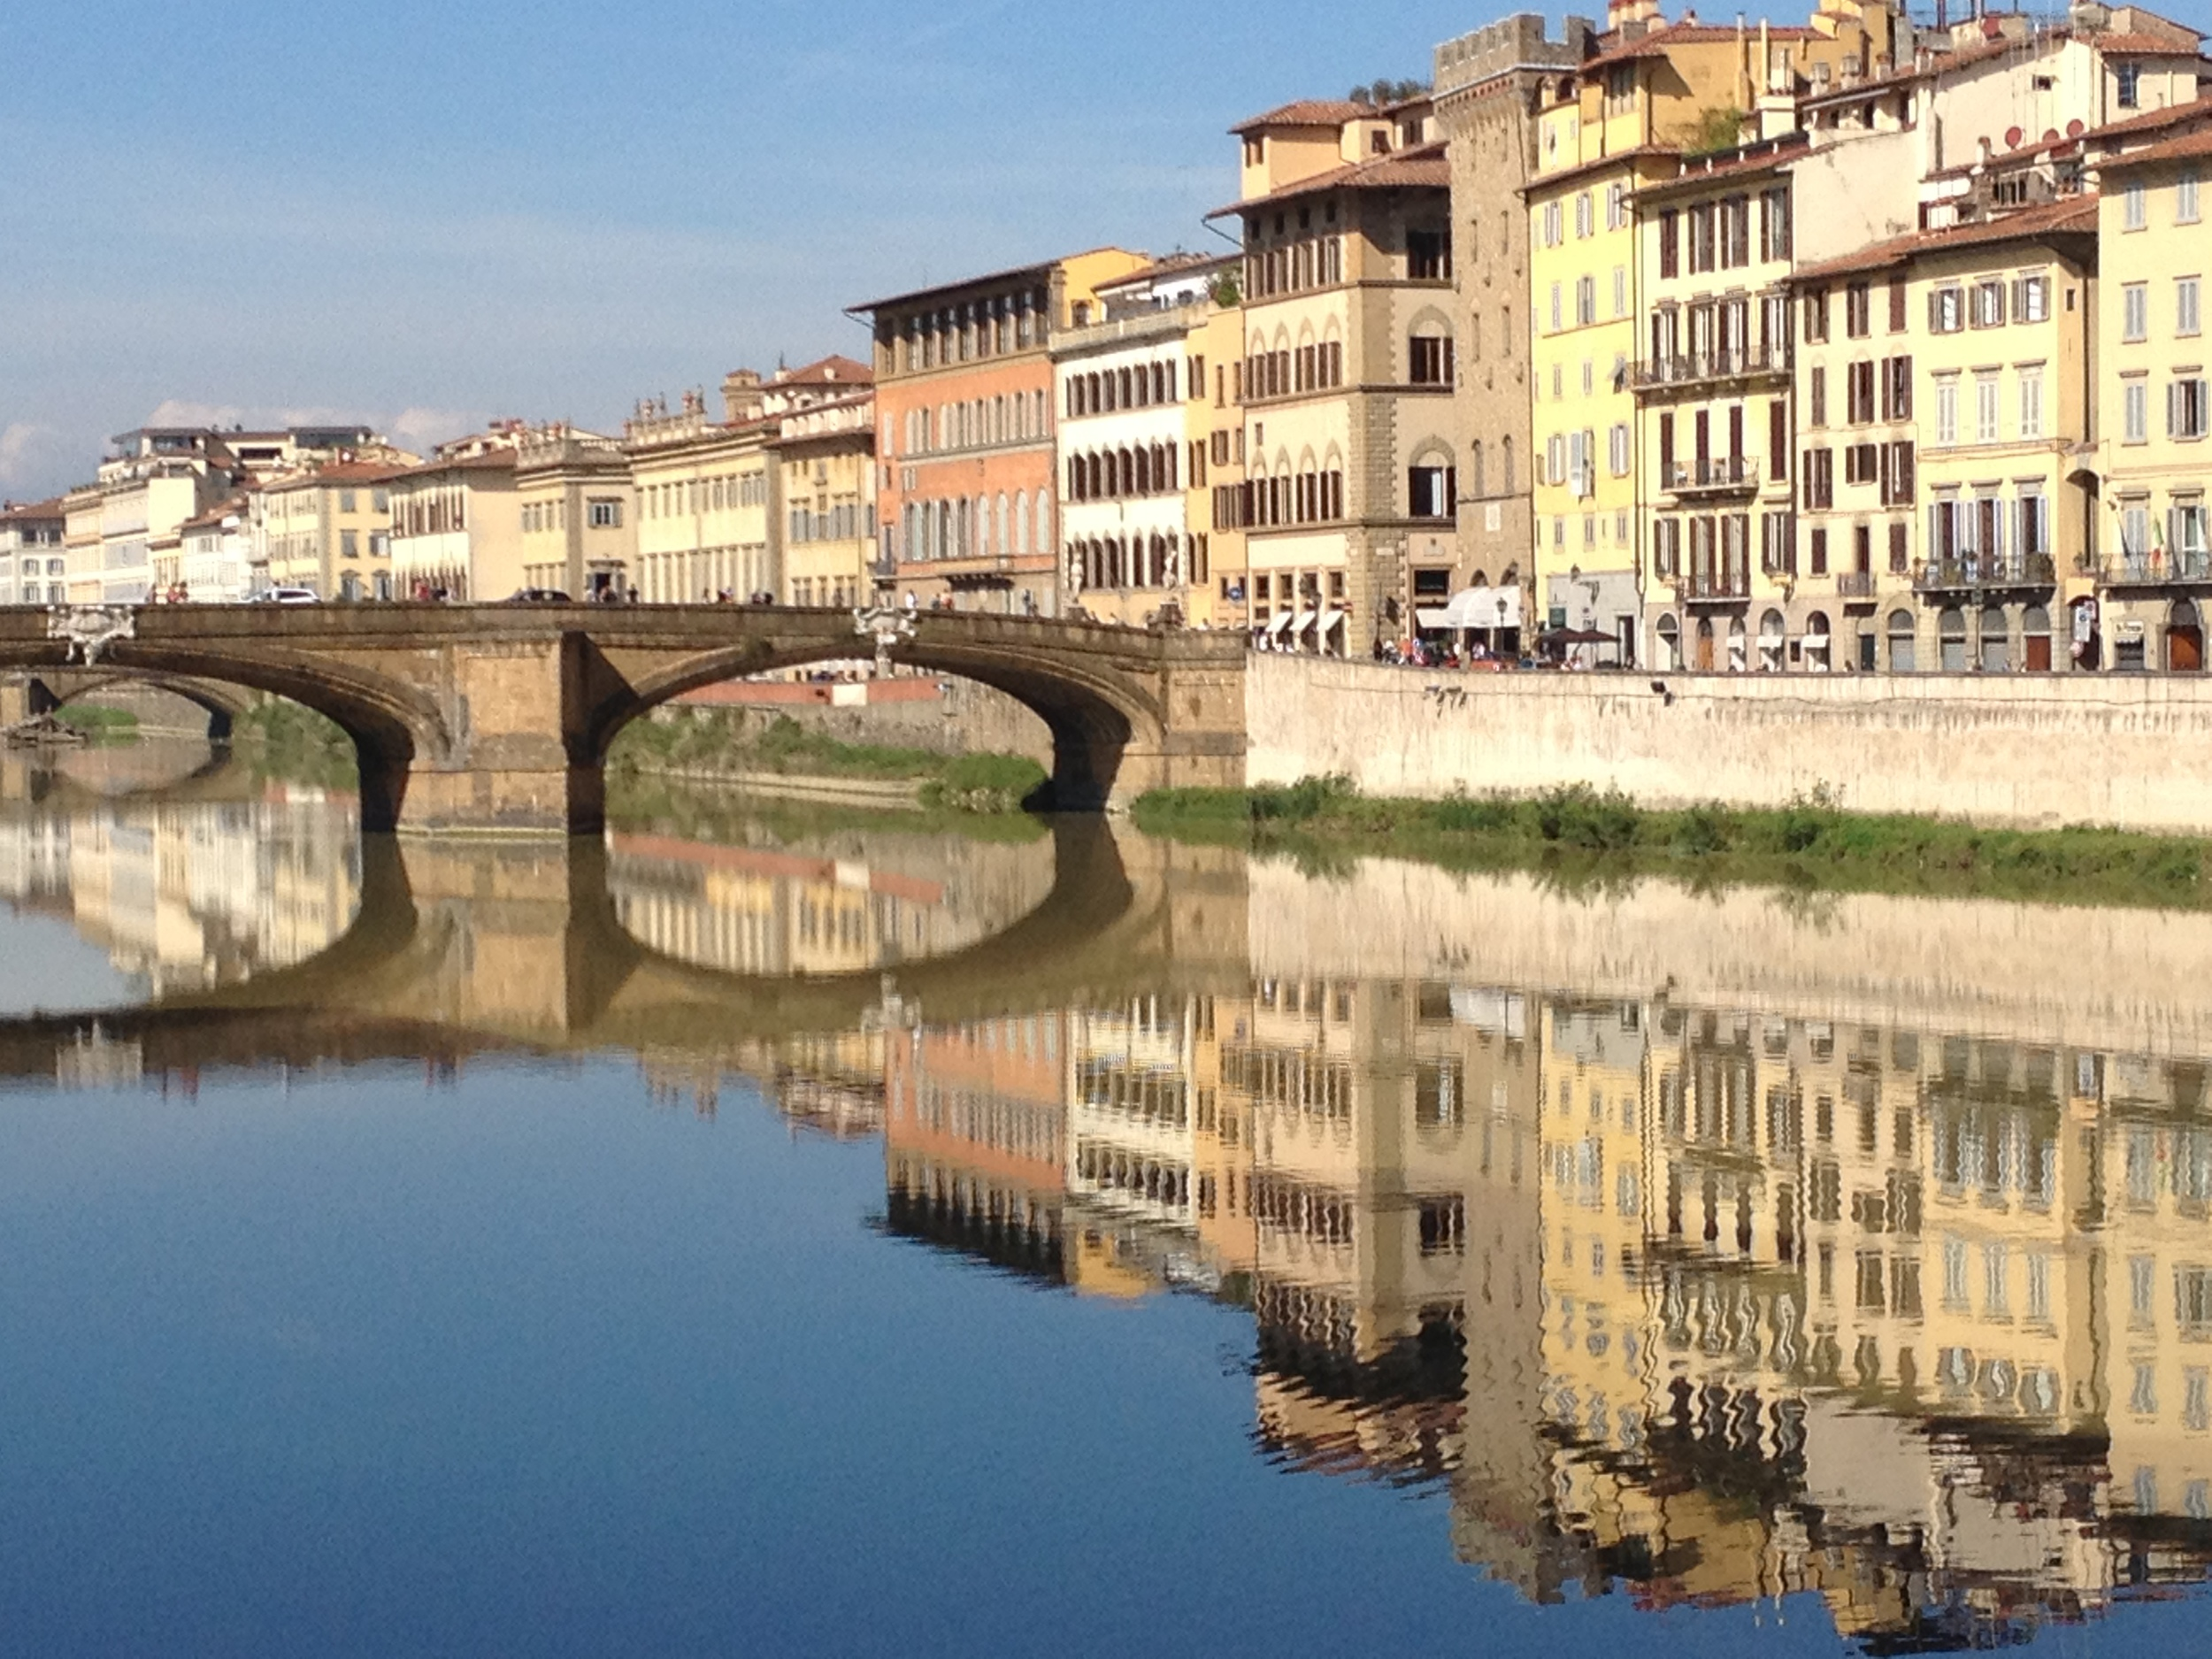 This is one of my postcard images of Florence.